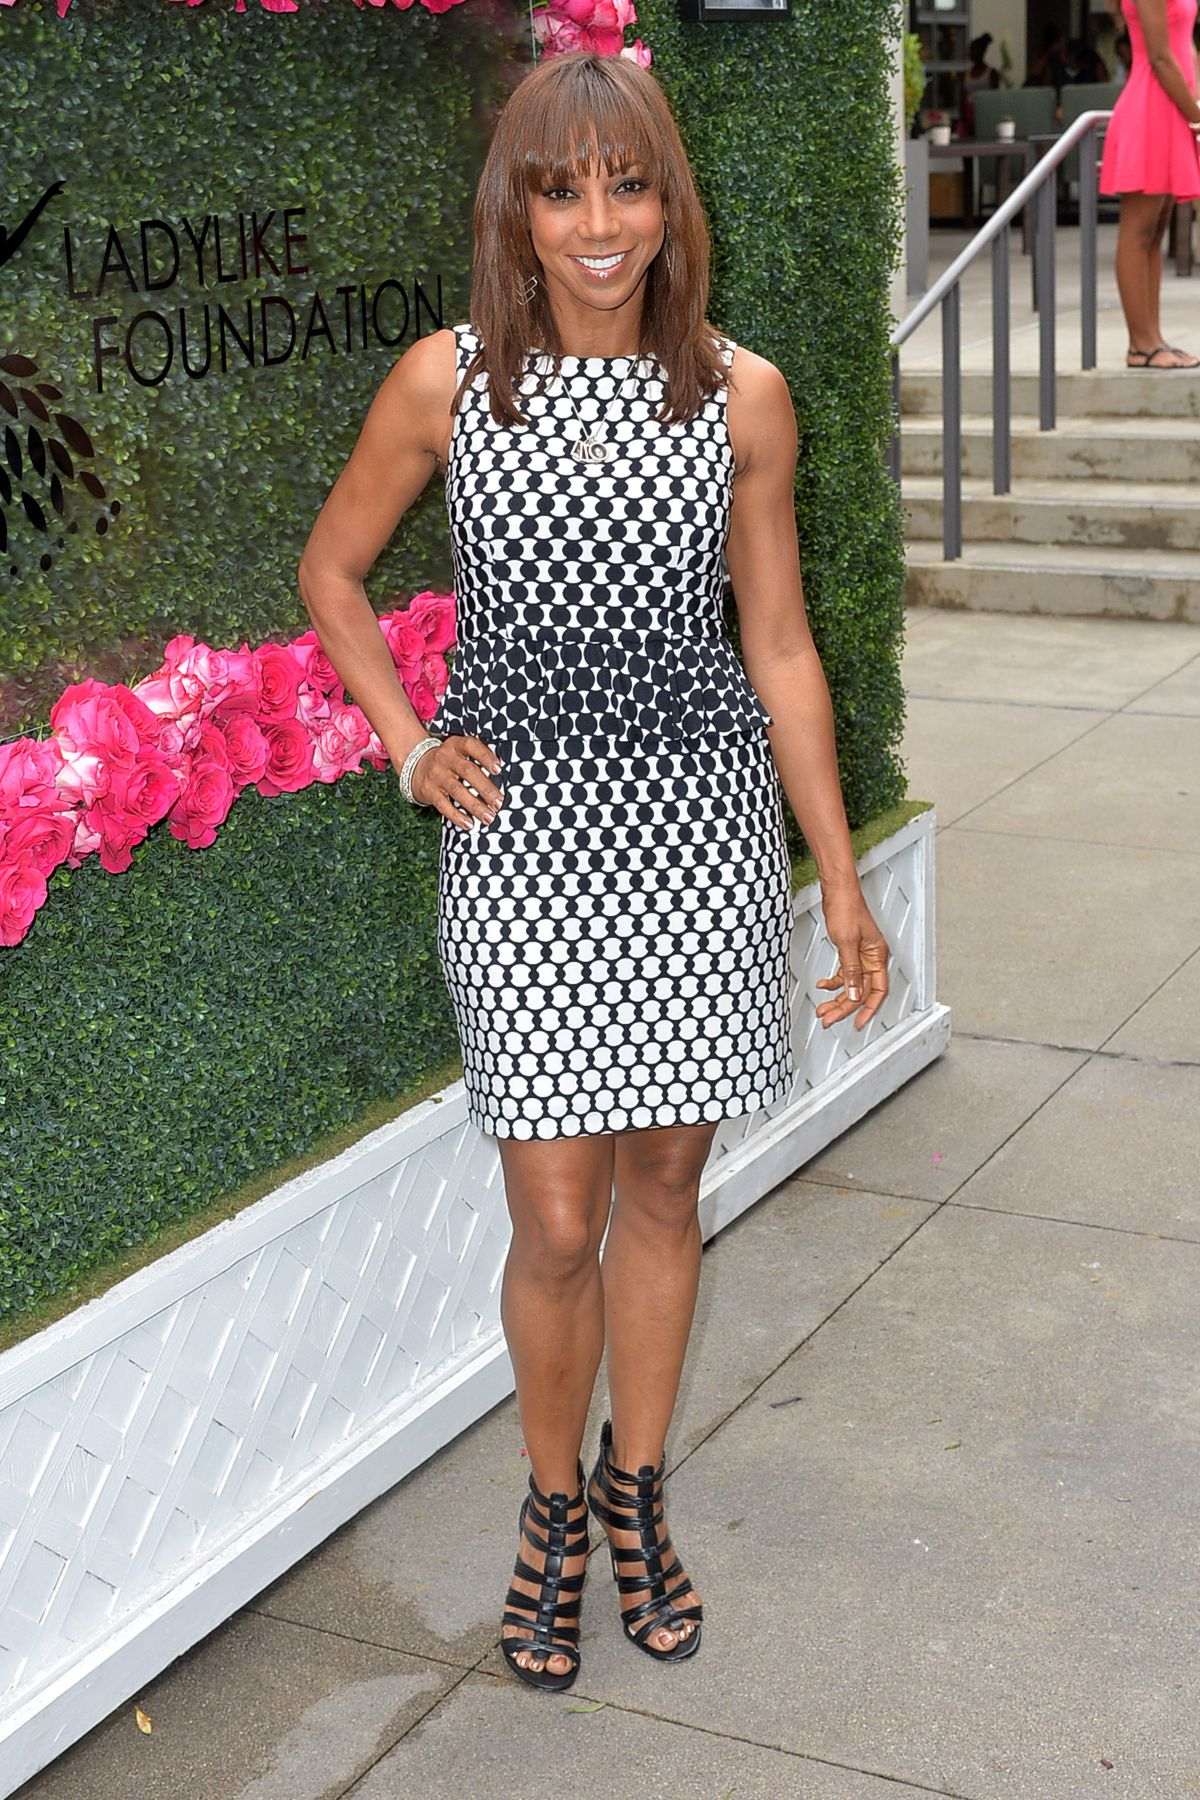 HOLLY ROBINSON PEETE at Women of Excellence Scholarship Luncheon in Los Angeles